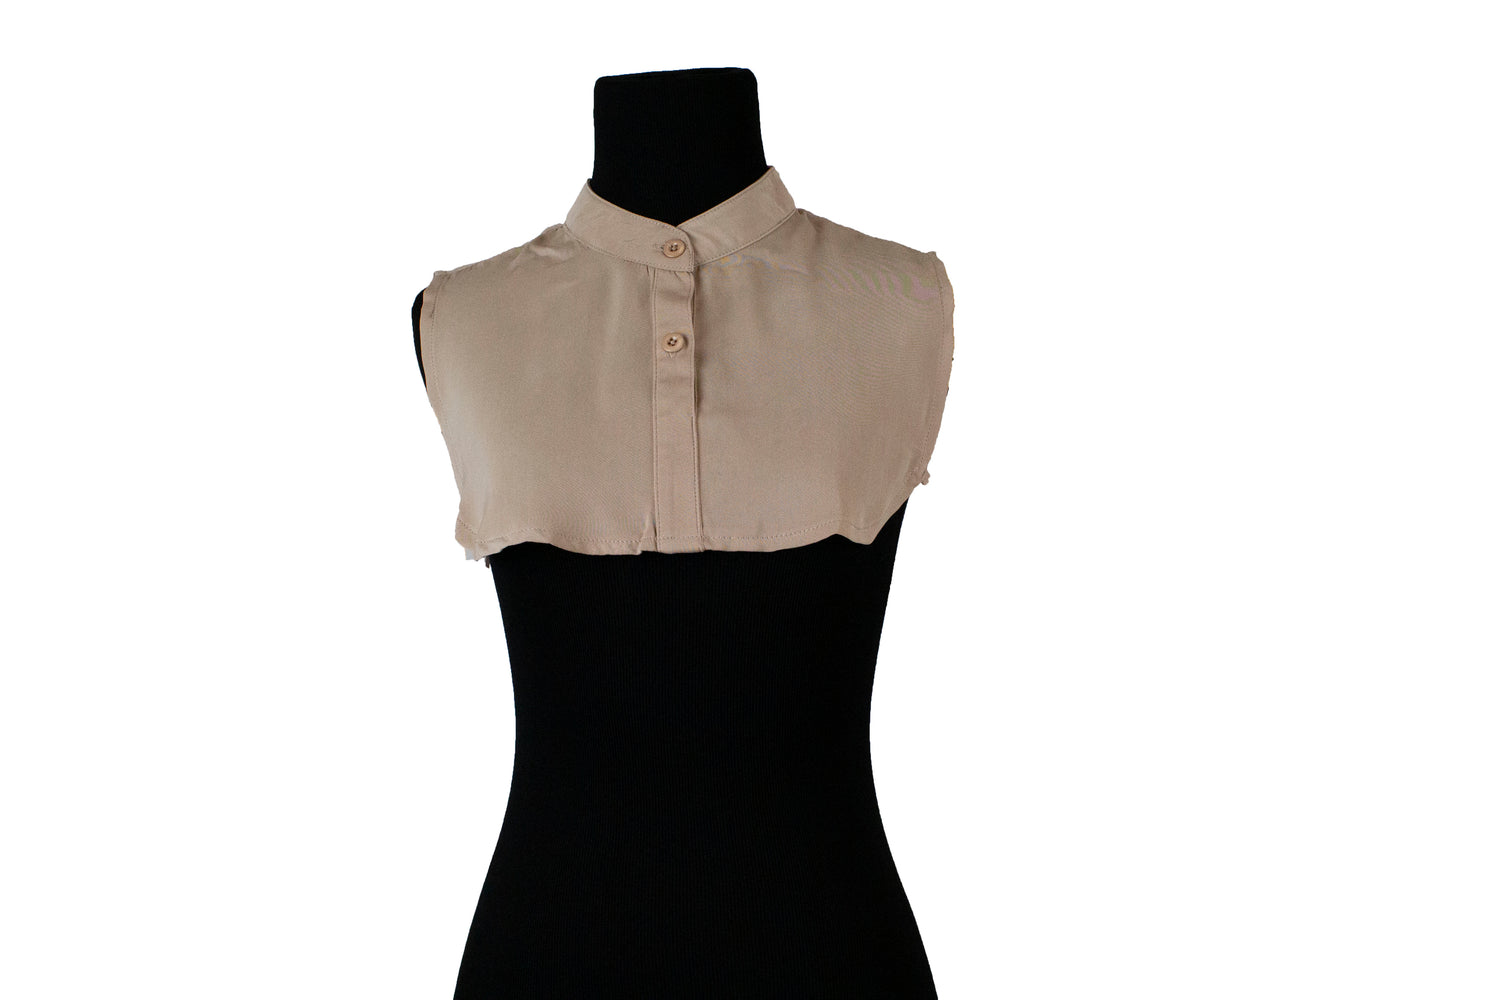 Mock Collar Neck Piece - Tan